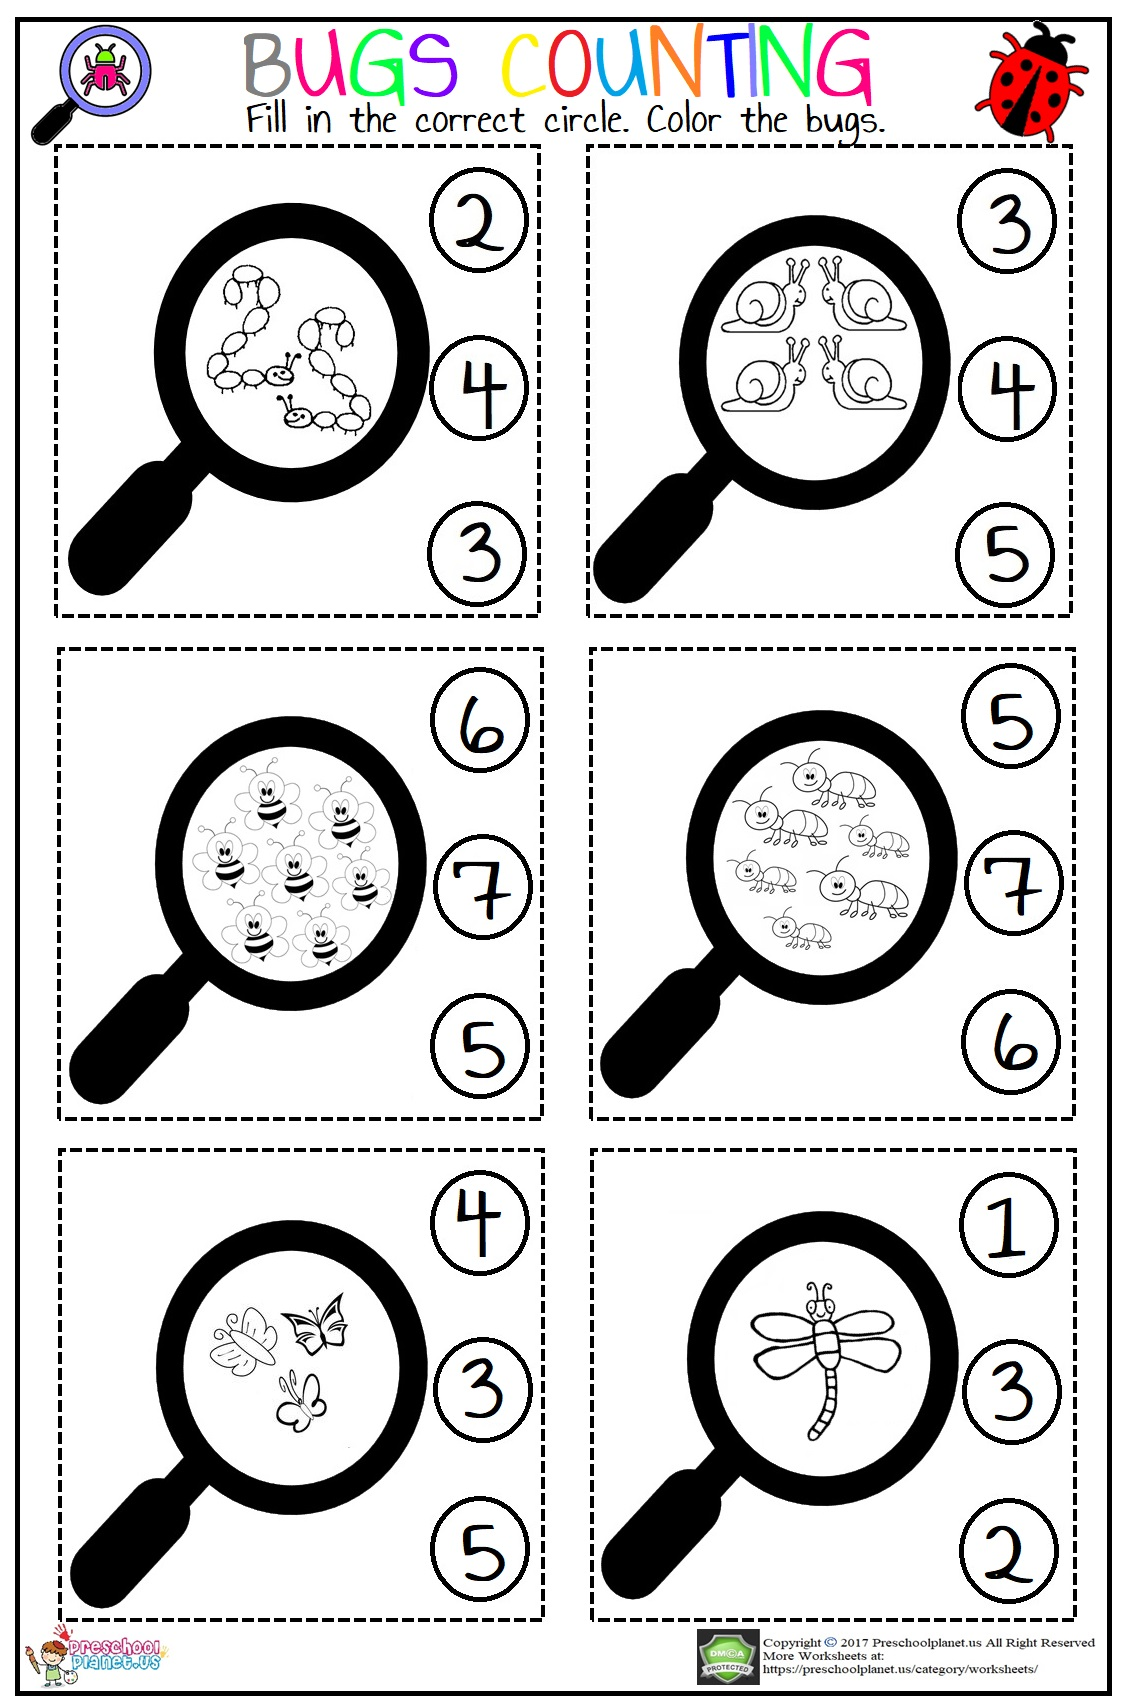 Bugs Counting Worksheet